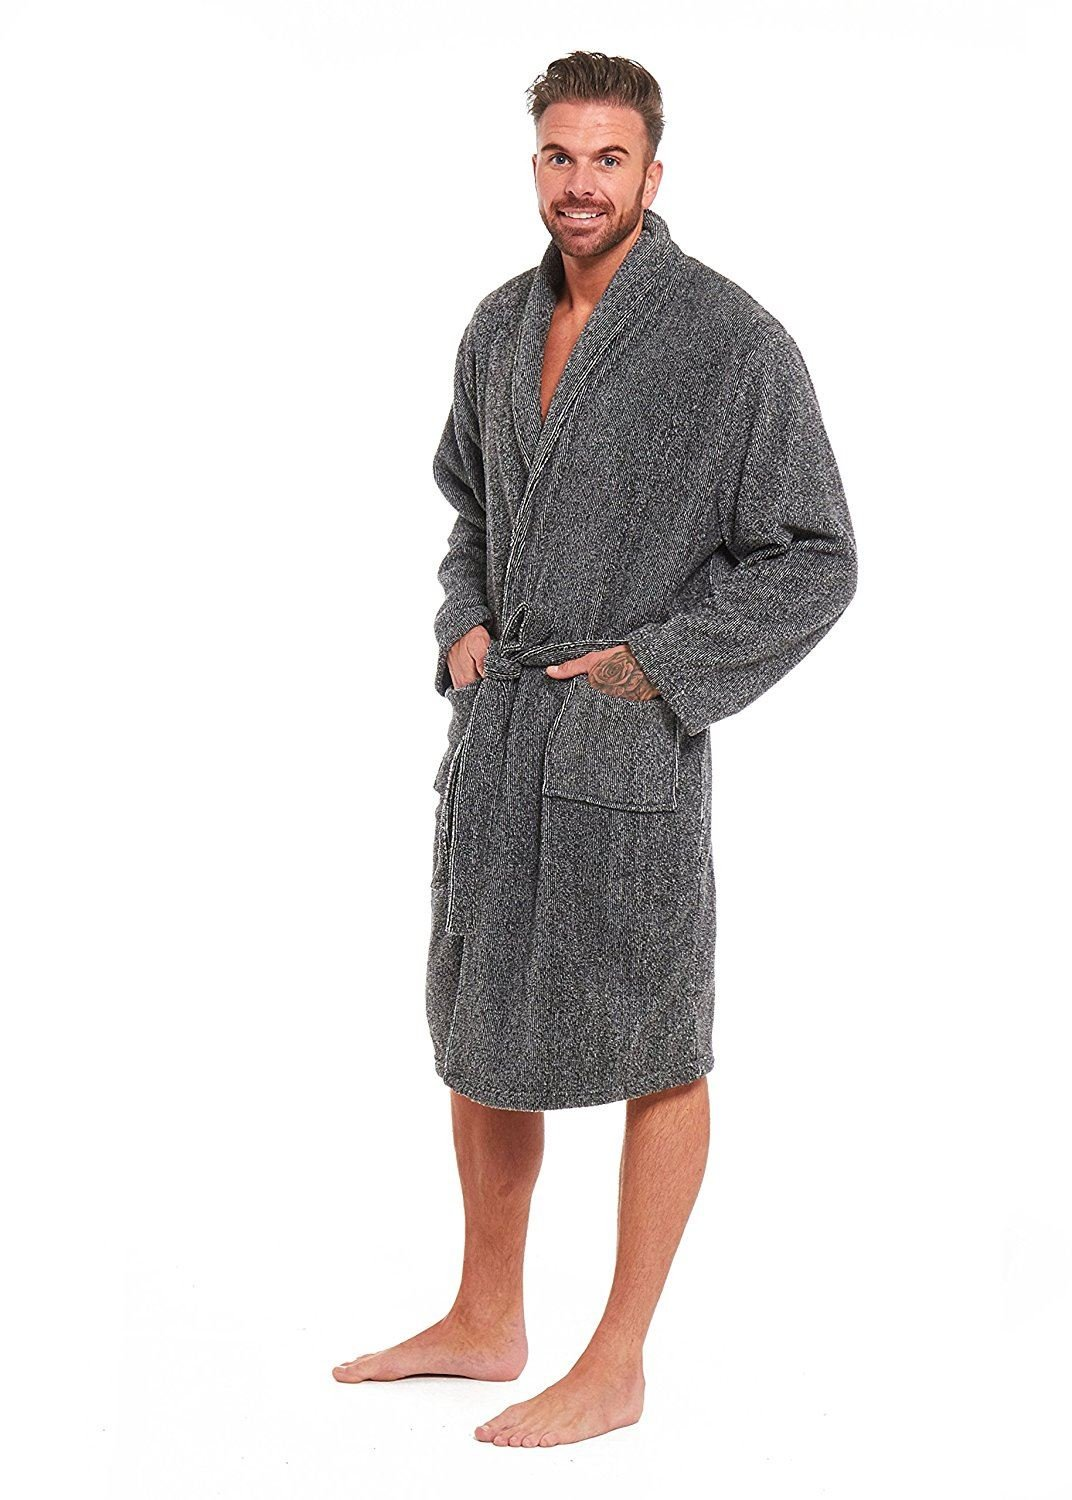 6d6d556aef5a Mens Luxury Super Soft Fleece Dressing Gown Bath Robe Hooded Thick Warm  Snuggle Style It Up larger image